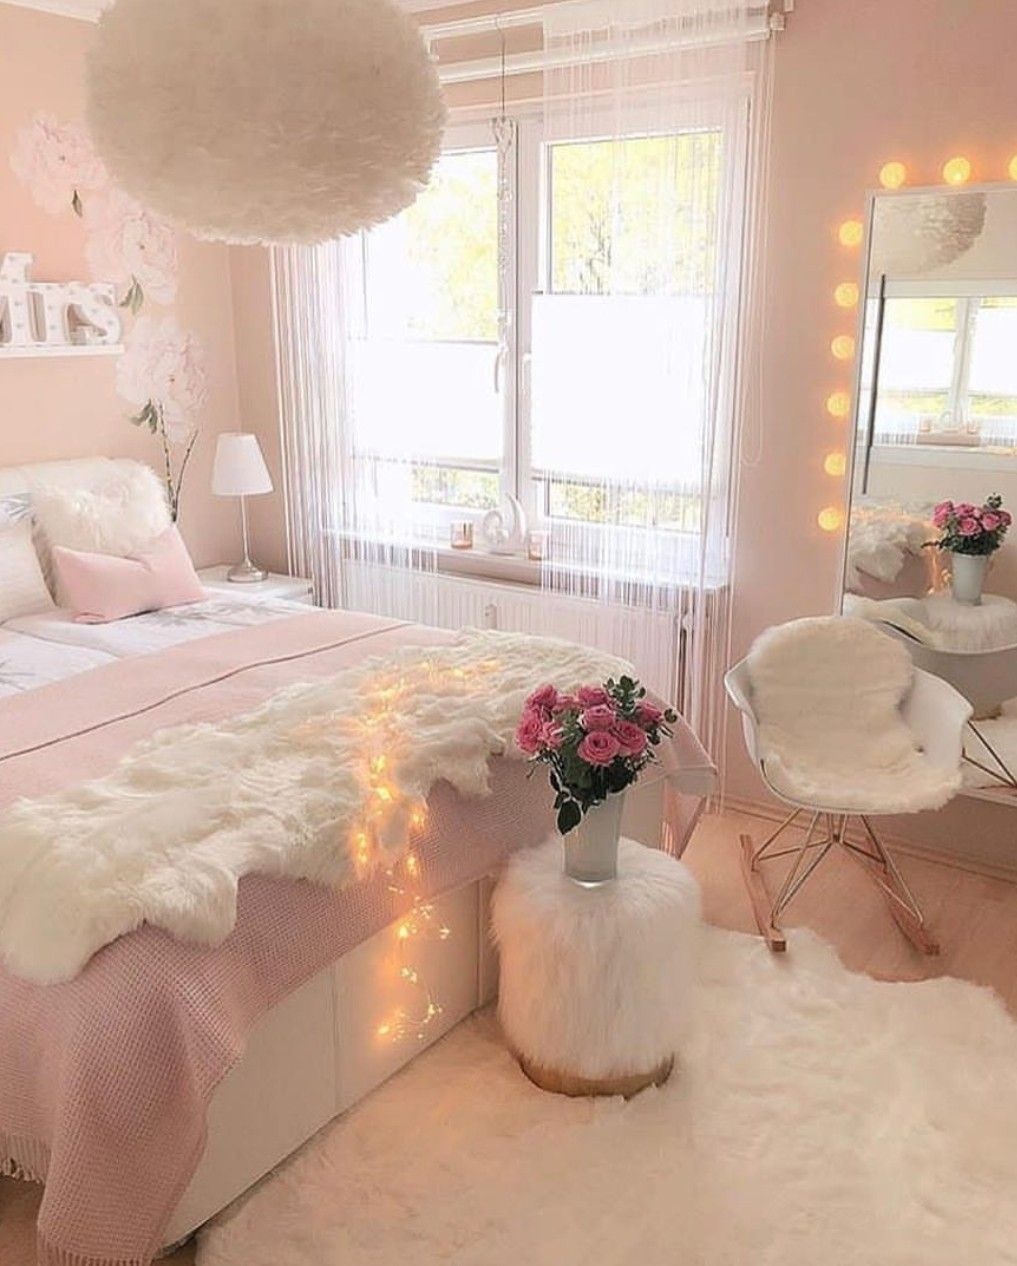 This room is totaly pretty #bedroomgoals